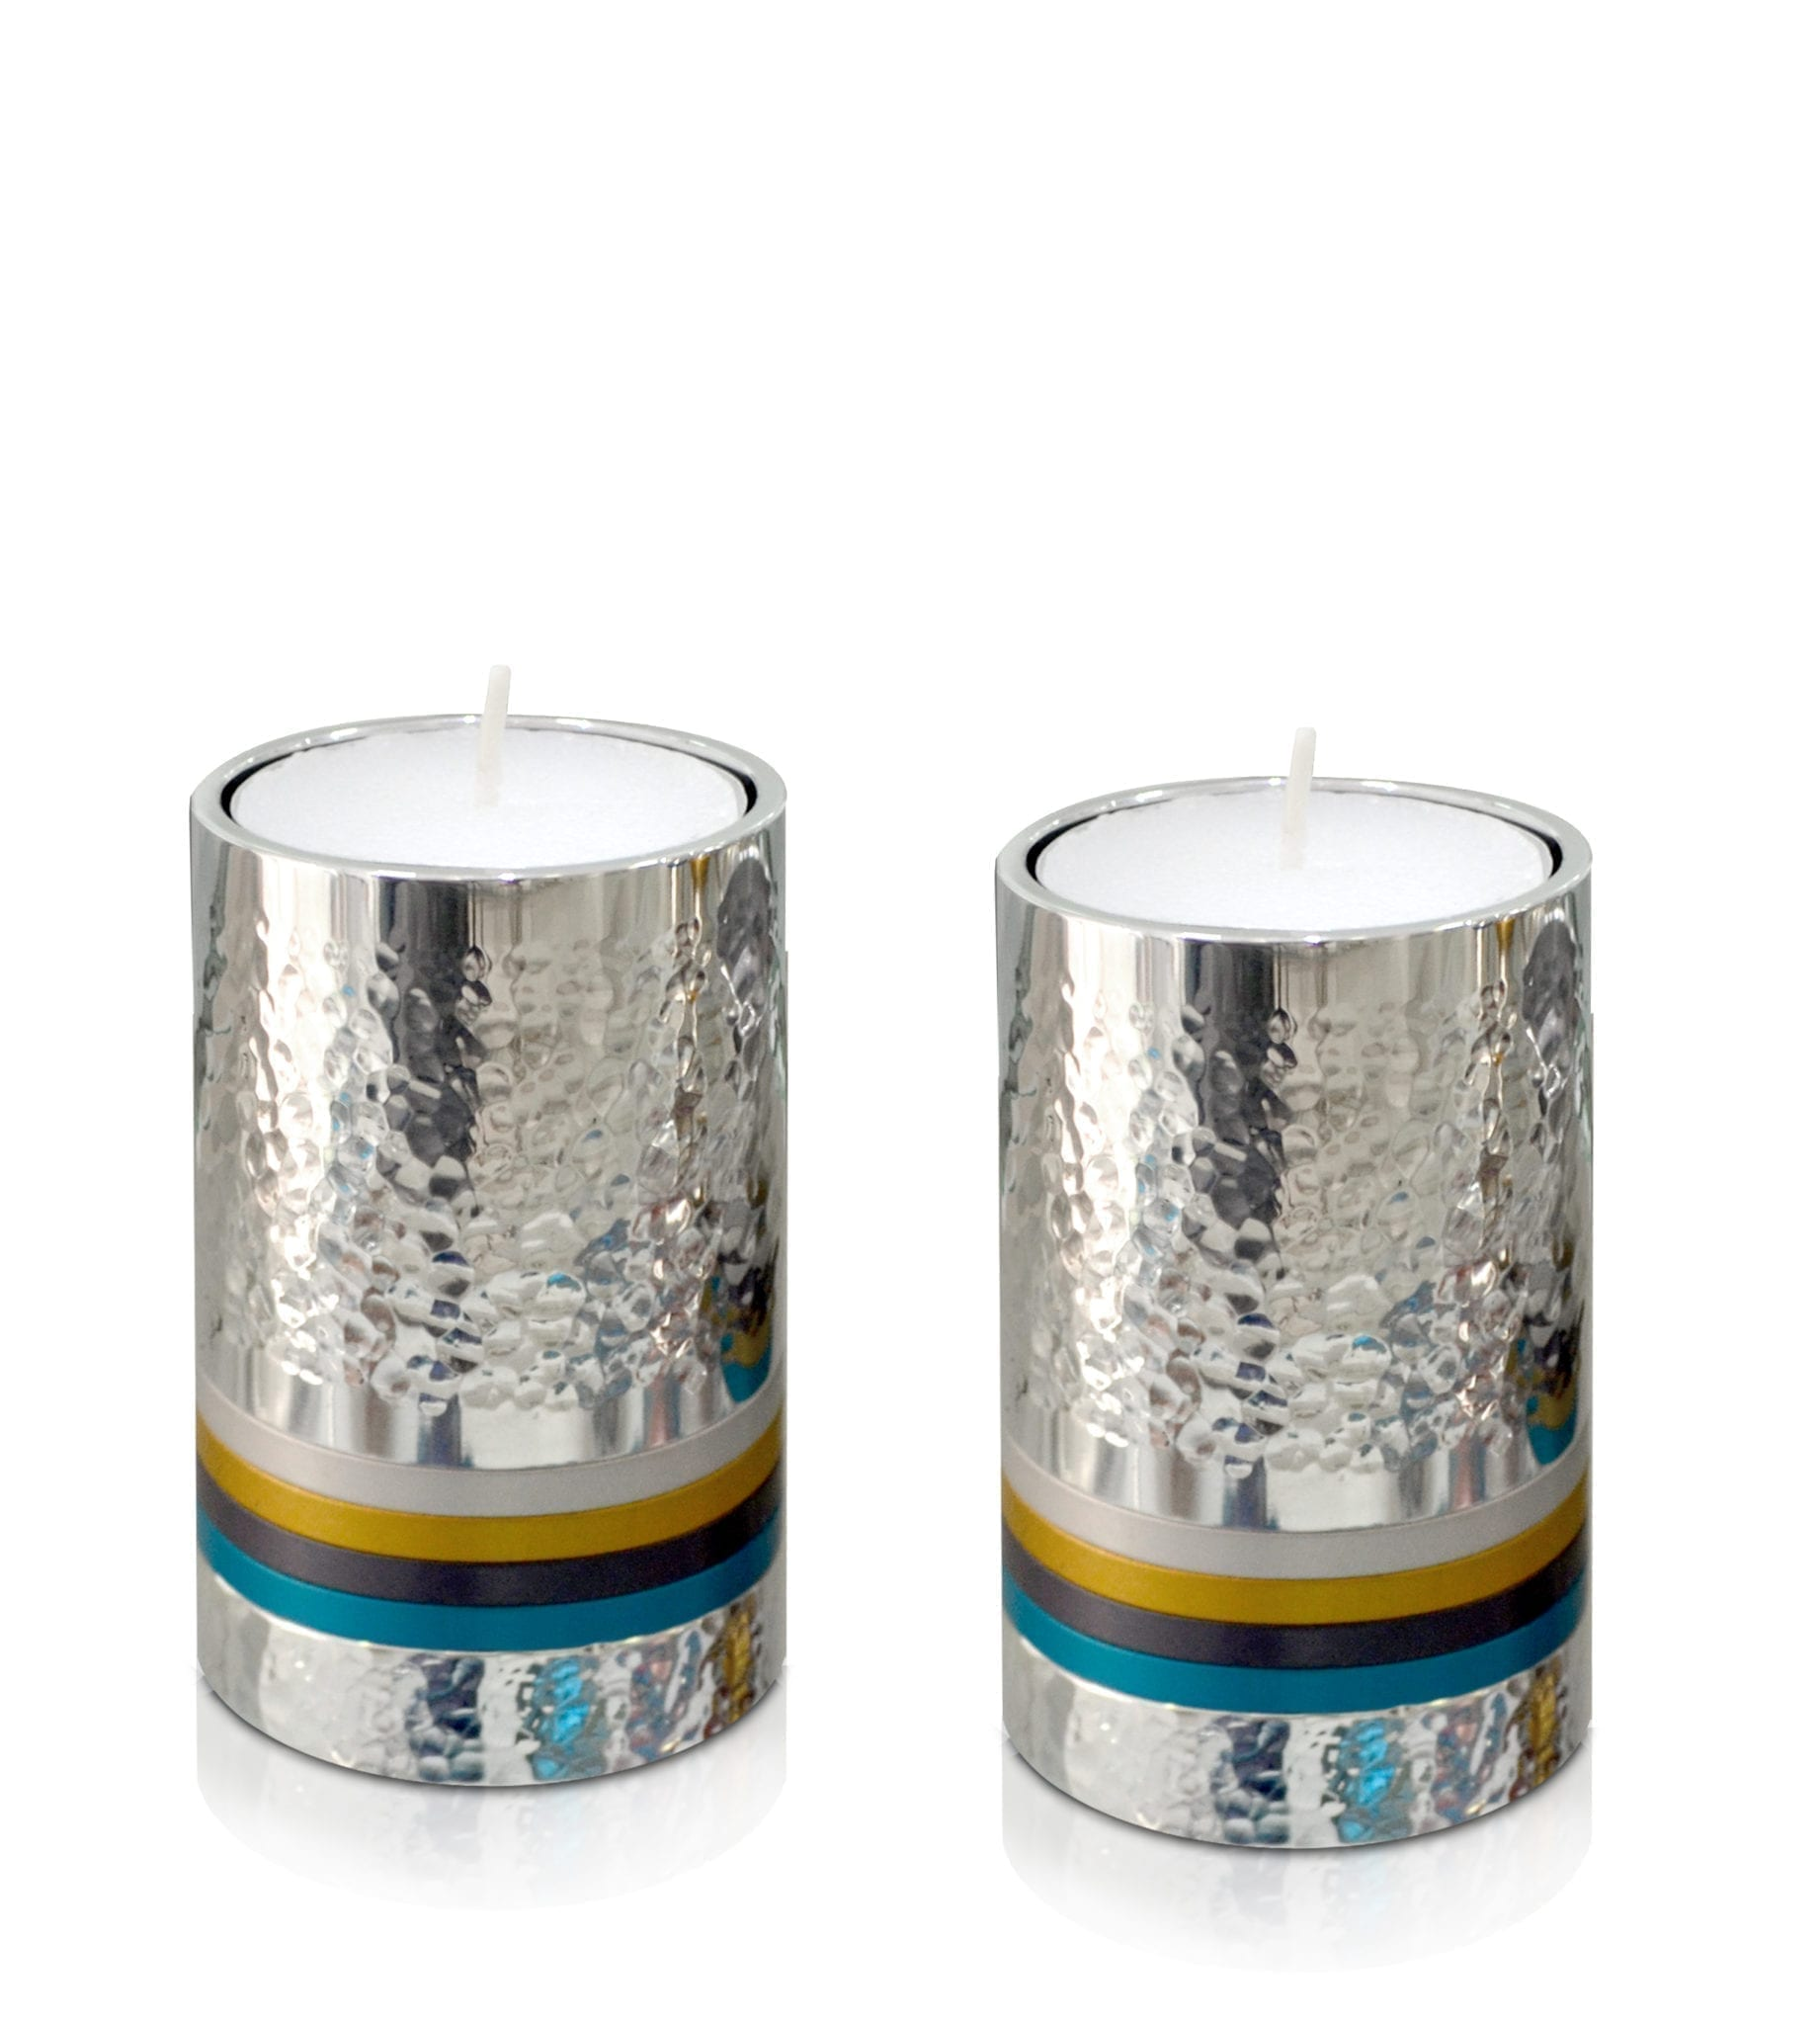 Petite, hammered silver cylindrical candlesticks with colorful rings, anodized aluminum Judaica & home decor made in Israel by Nadav Art